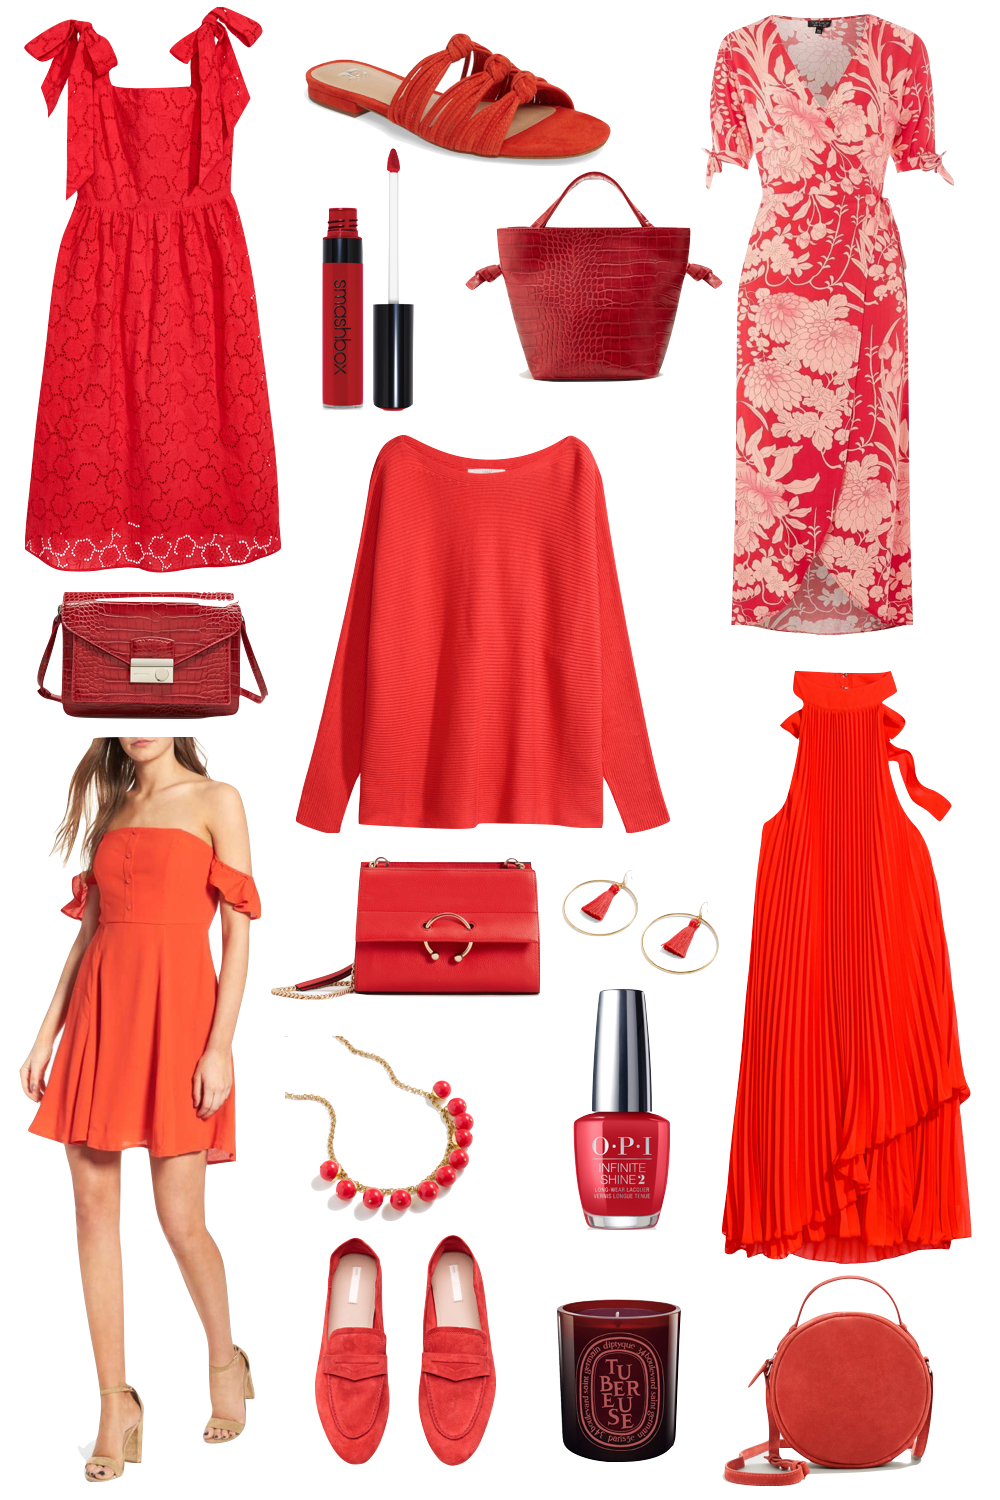 kelly's chic under $100: red hot | the stripe